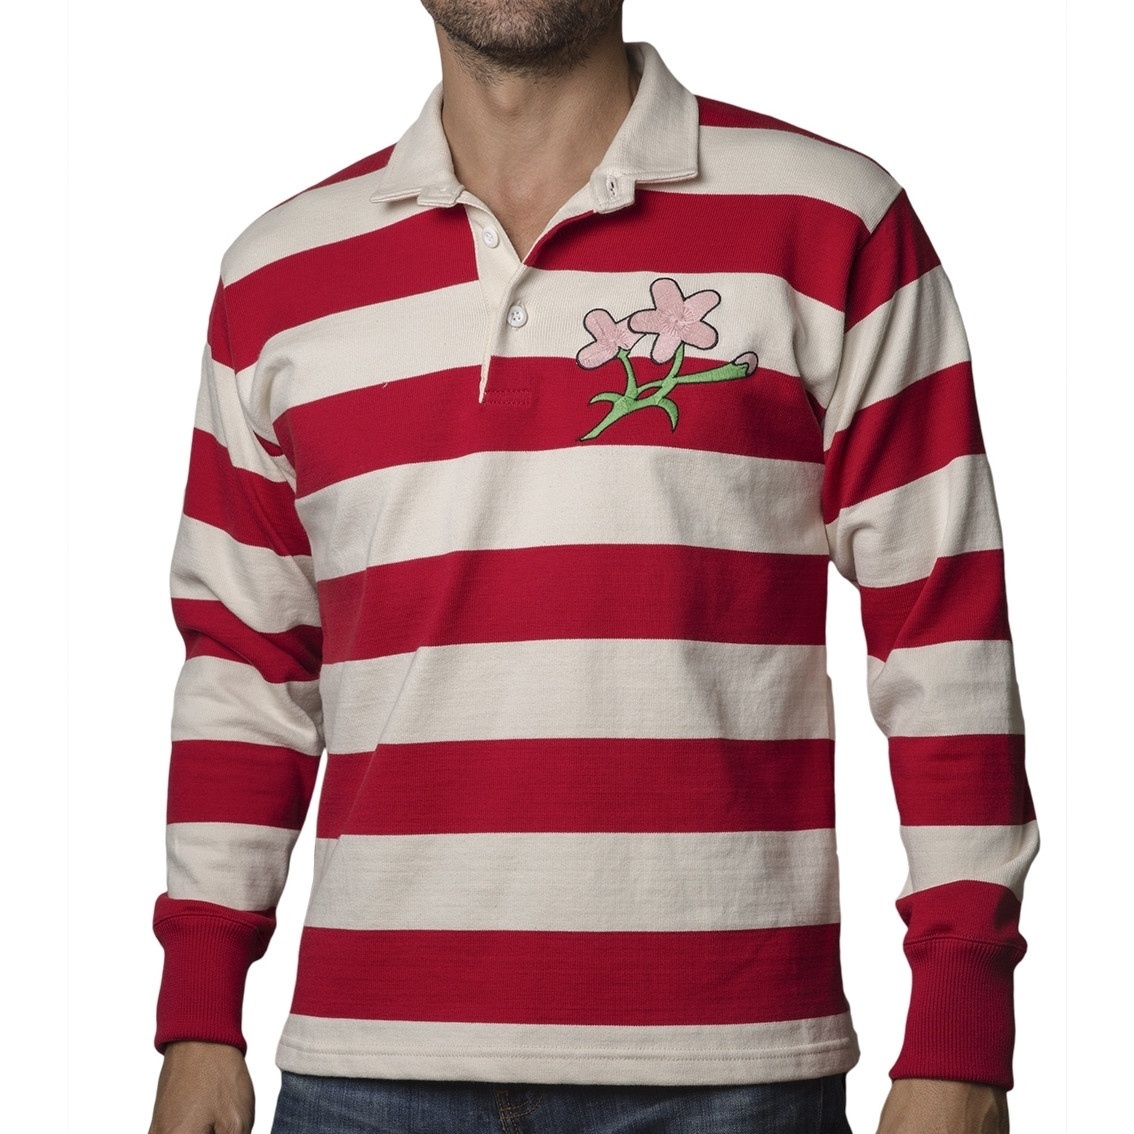 Maillot rugby Japon 1932 - Sports d'Époque